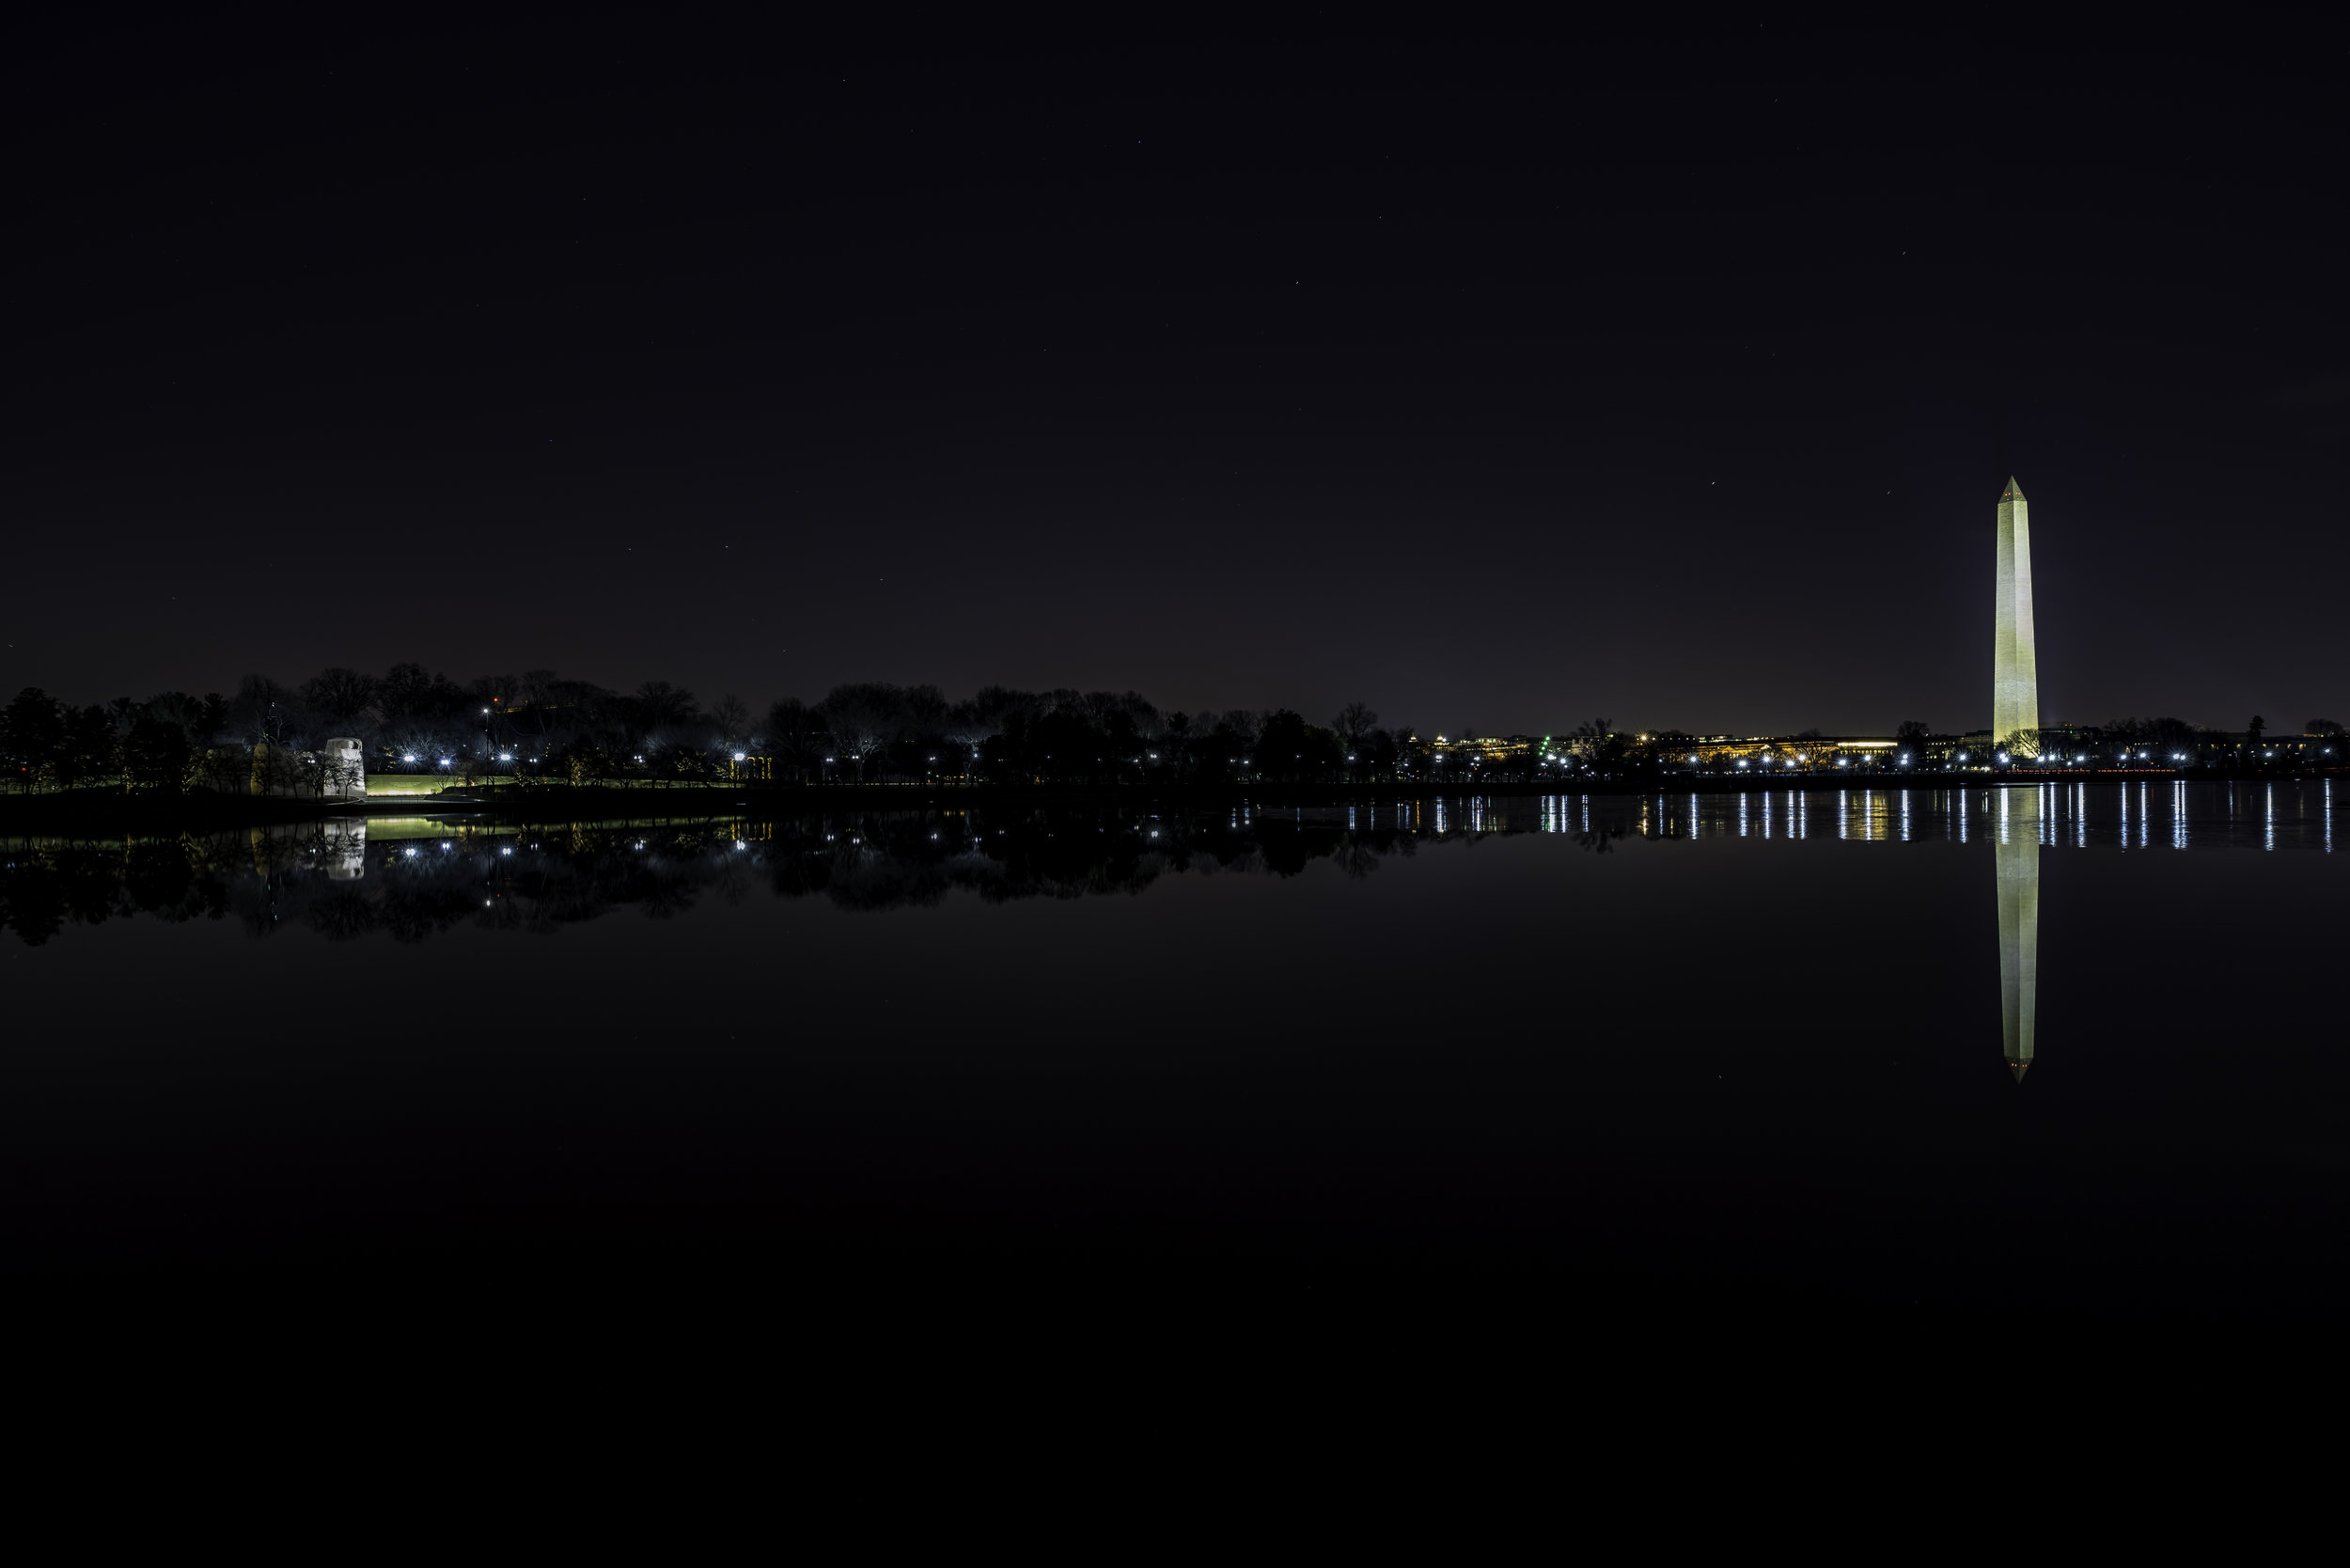 Sigma 20mm F/1.4 Art - 30sec, F/7.1, ISO 100, Tripod - Testing low light recovery and it picked up focus and handled well.